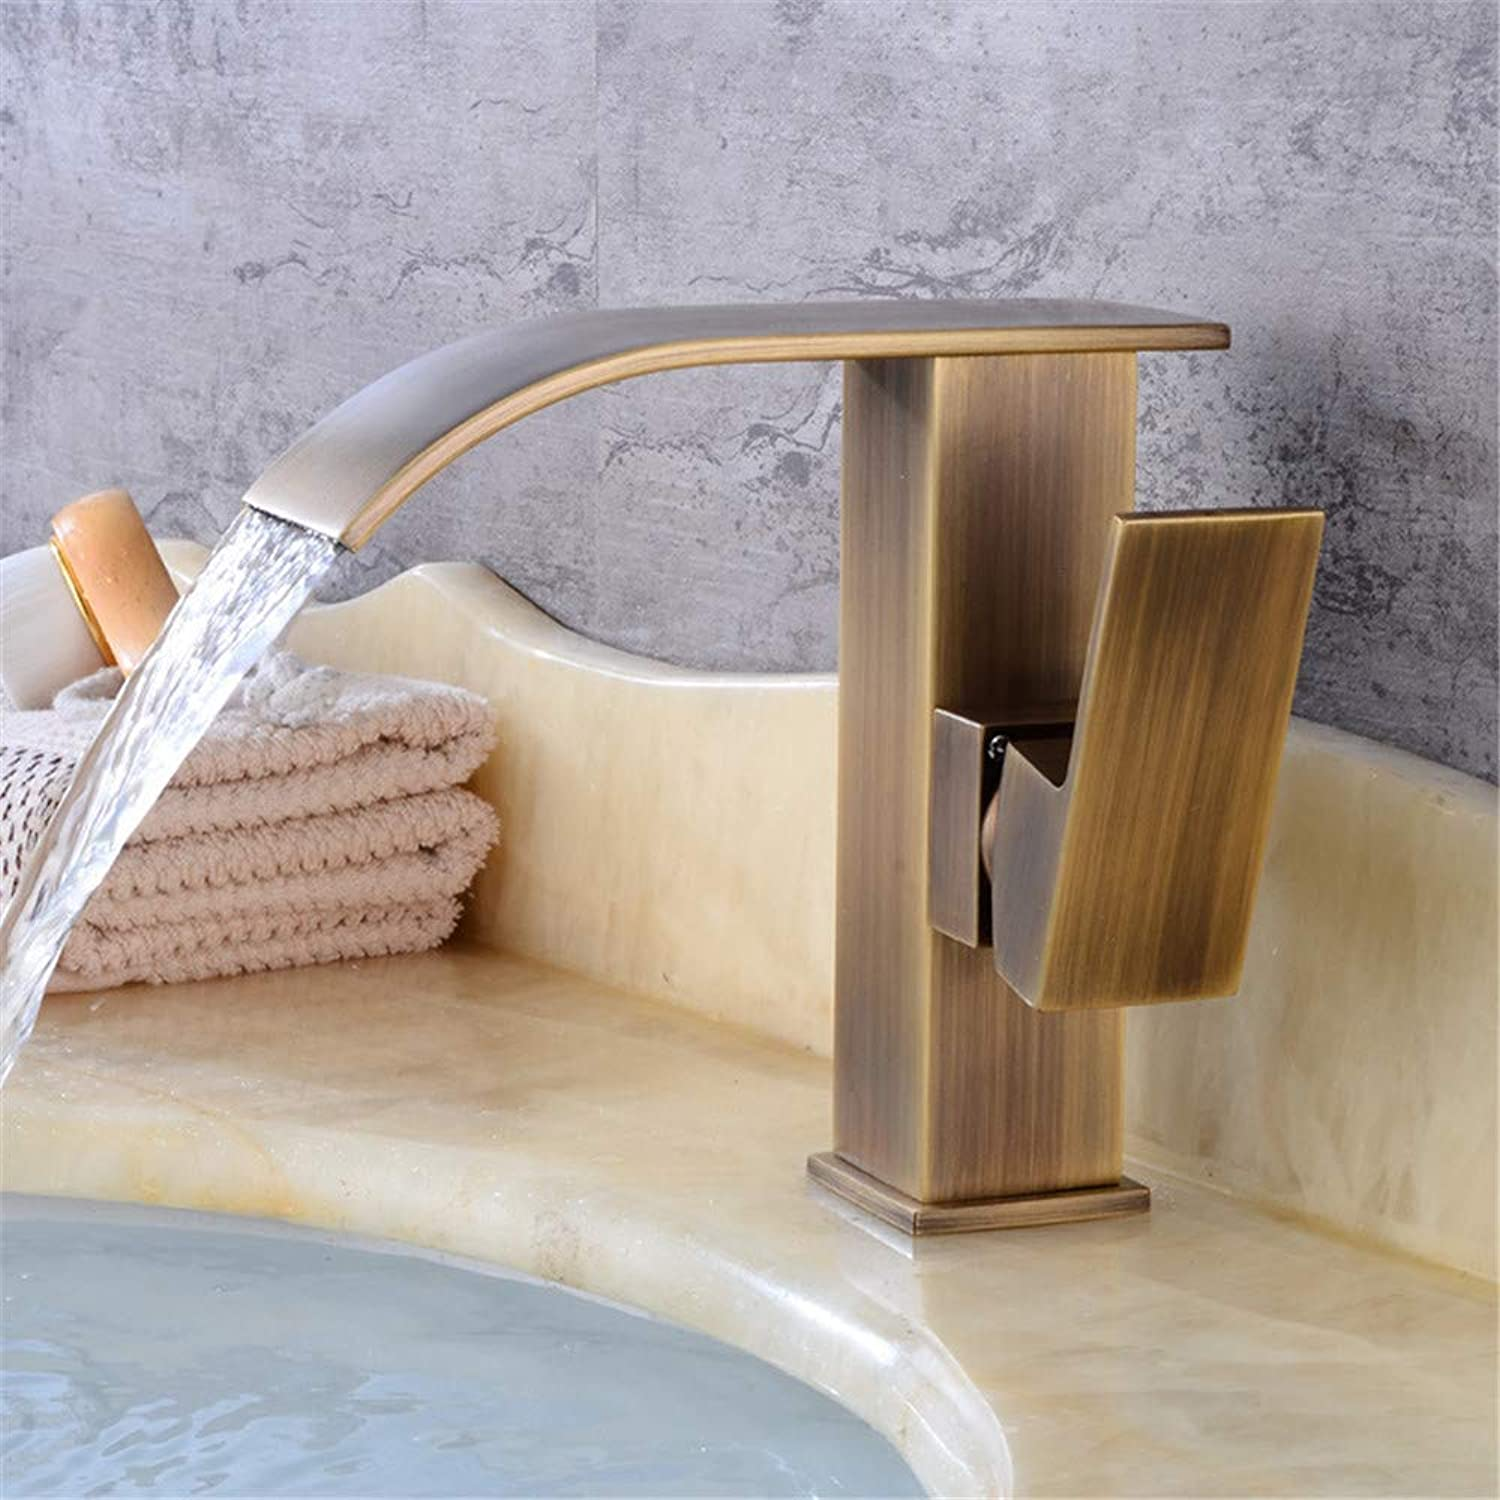 Falls On Stage Personality Brass Wash Basin Faucet Bathroom Vanities Bathroom Cabinet Continental Antique Paint Mixer B (color   B, Size   -)